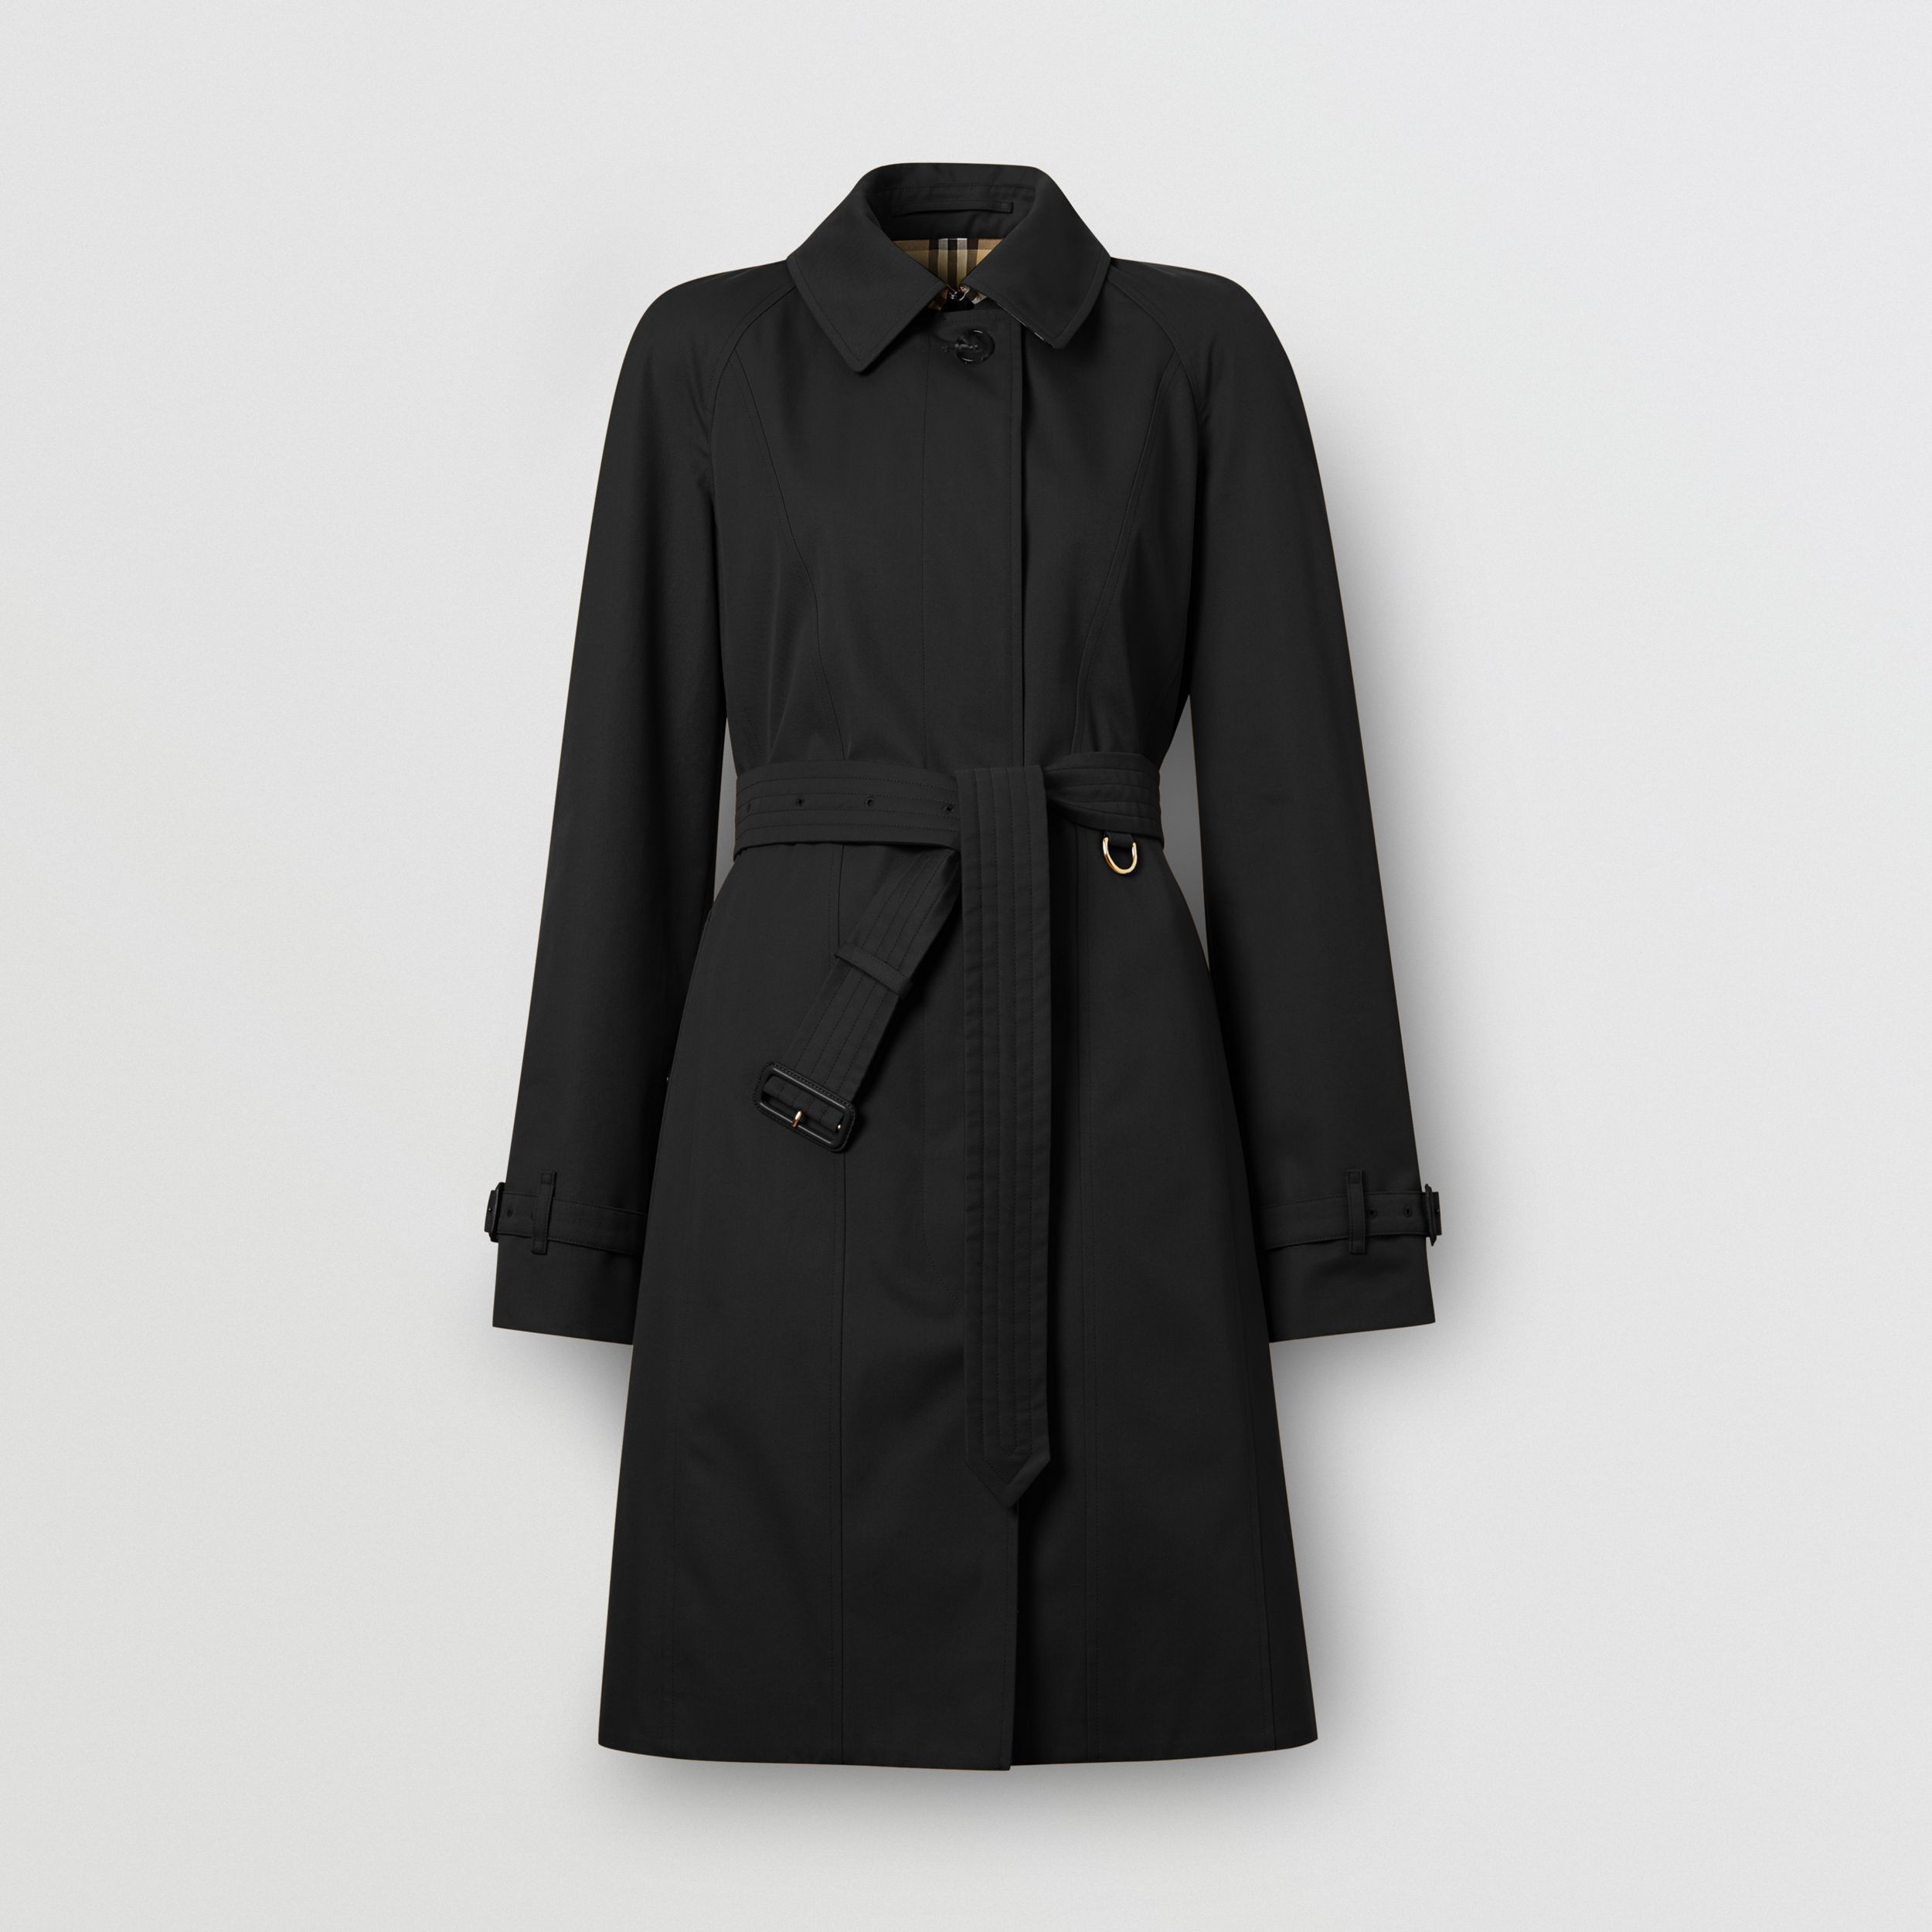 Cotton Gabardine Belted Swing Coat in Black - Women | Burberry United States - 4